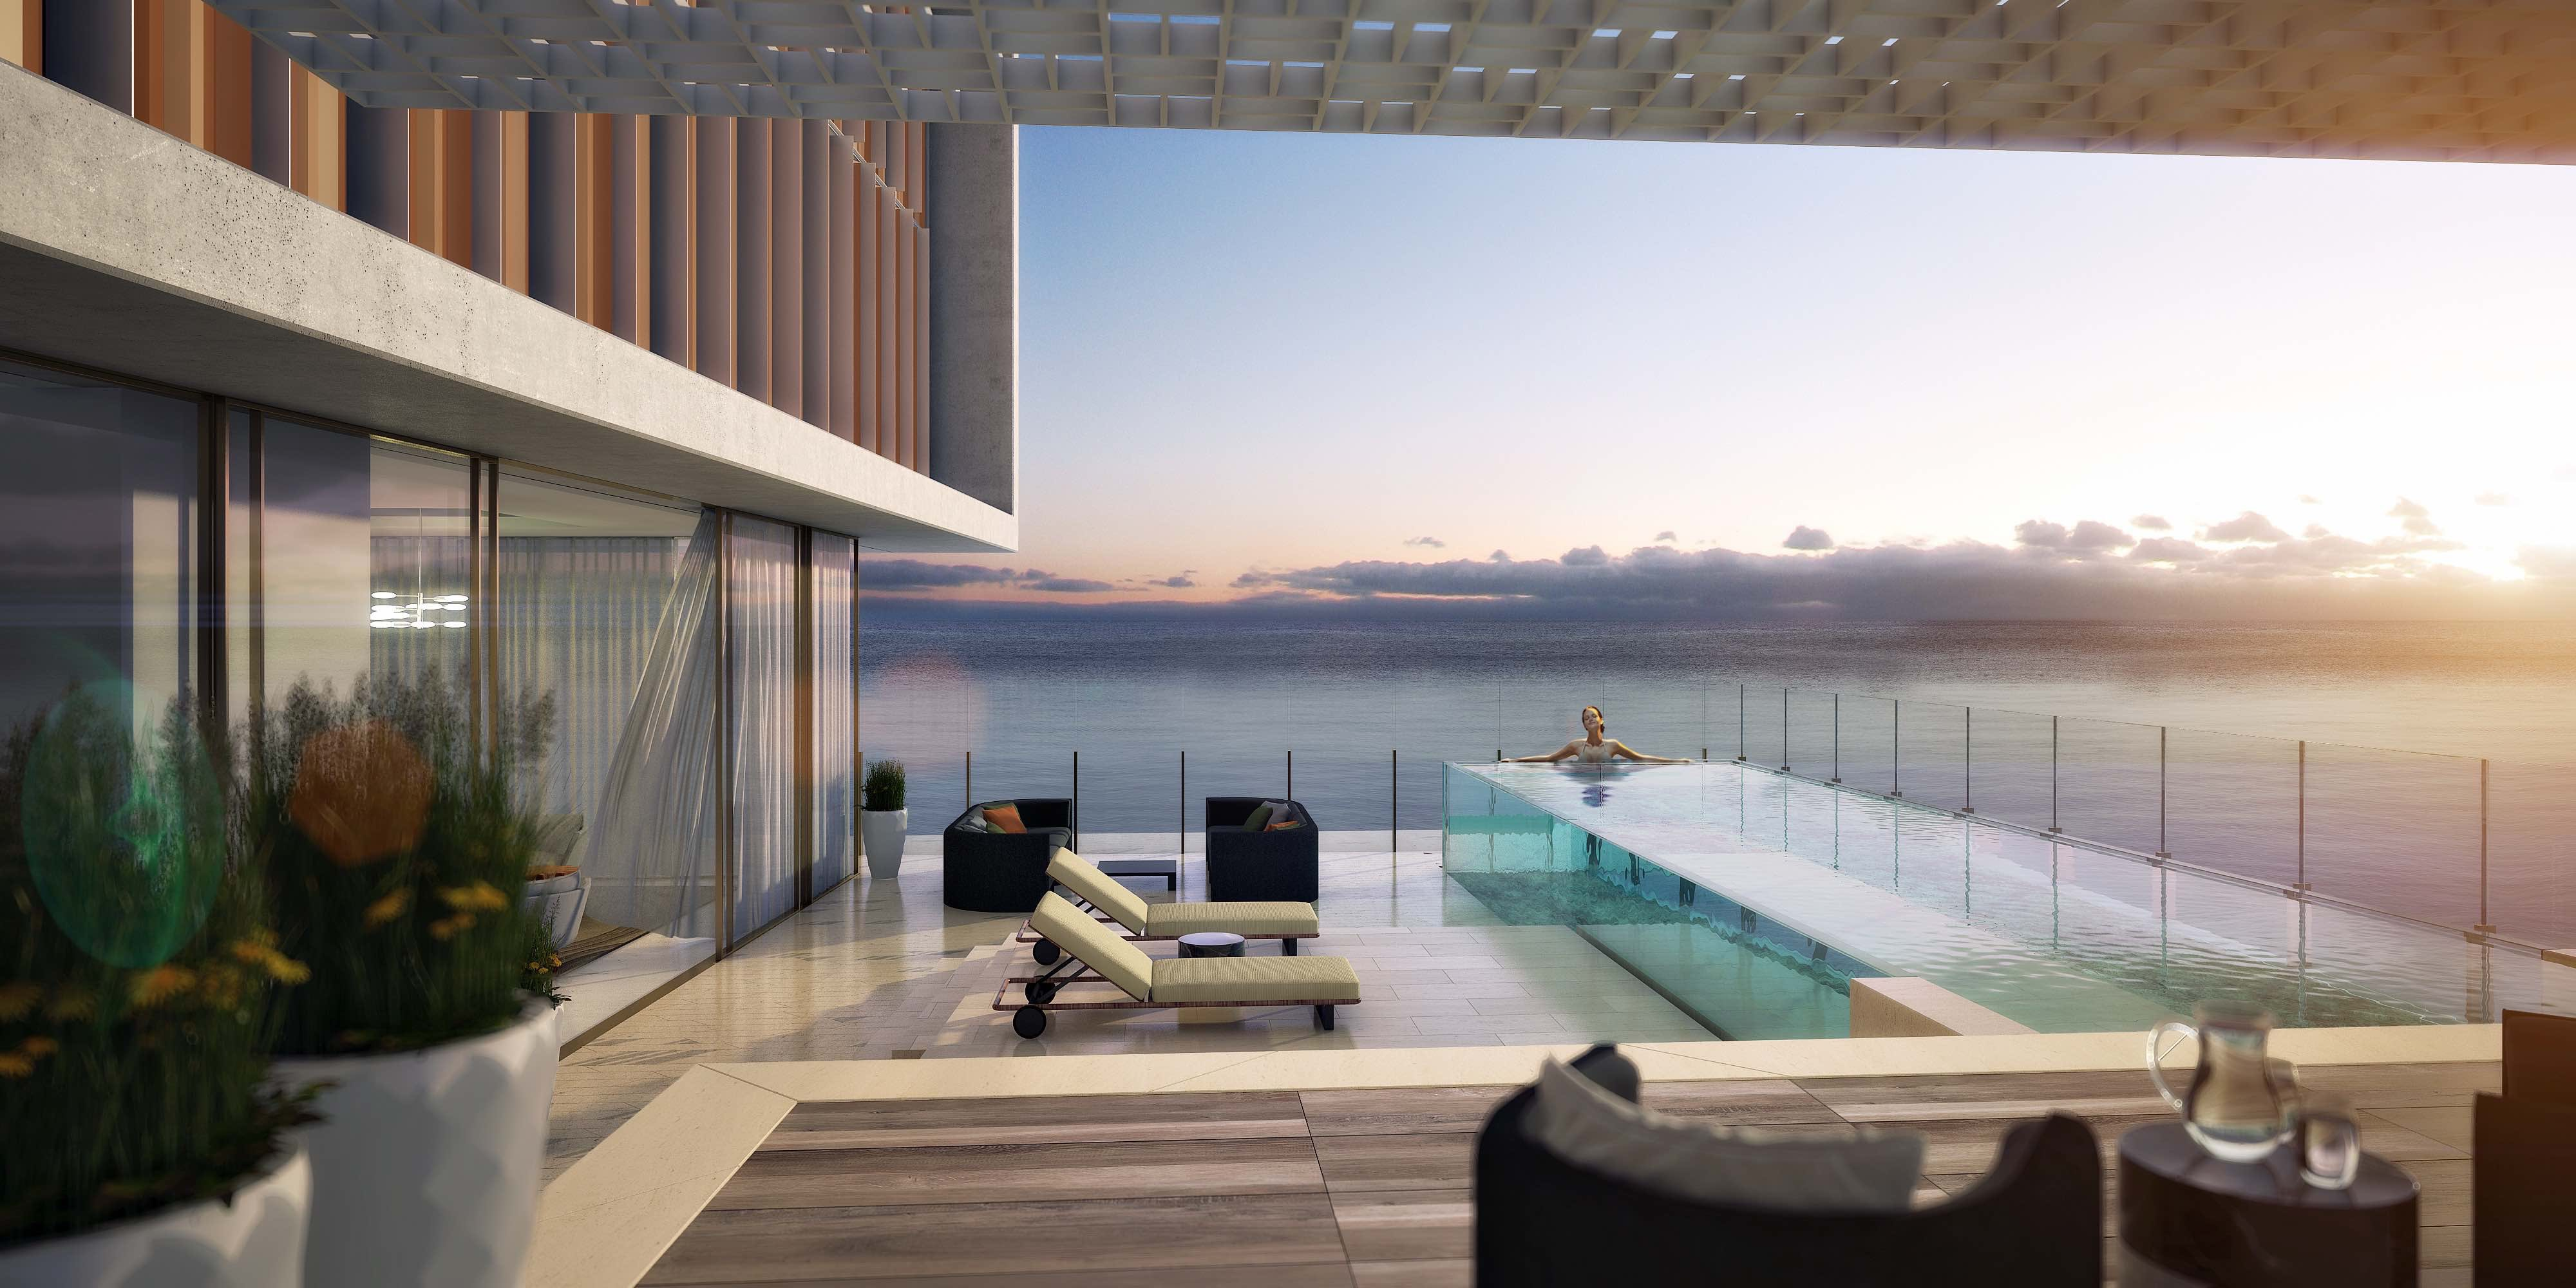 Sky courts feature suites with magnificent landscaping to stunning acrylic pools royal atlantis sky courts feature acrylic pools 46 storeys up